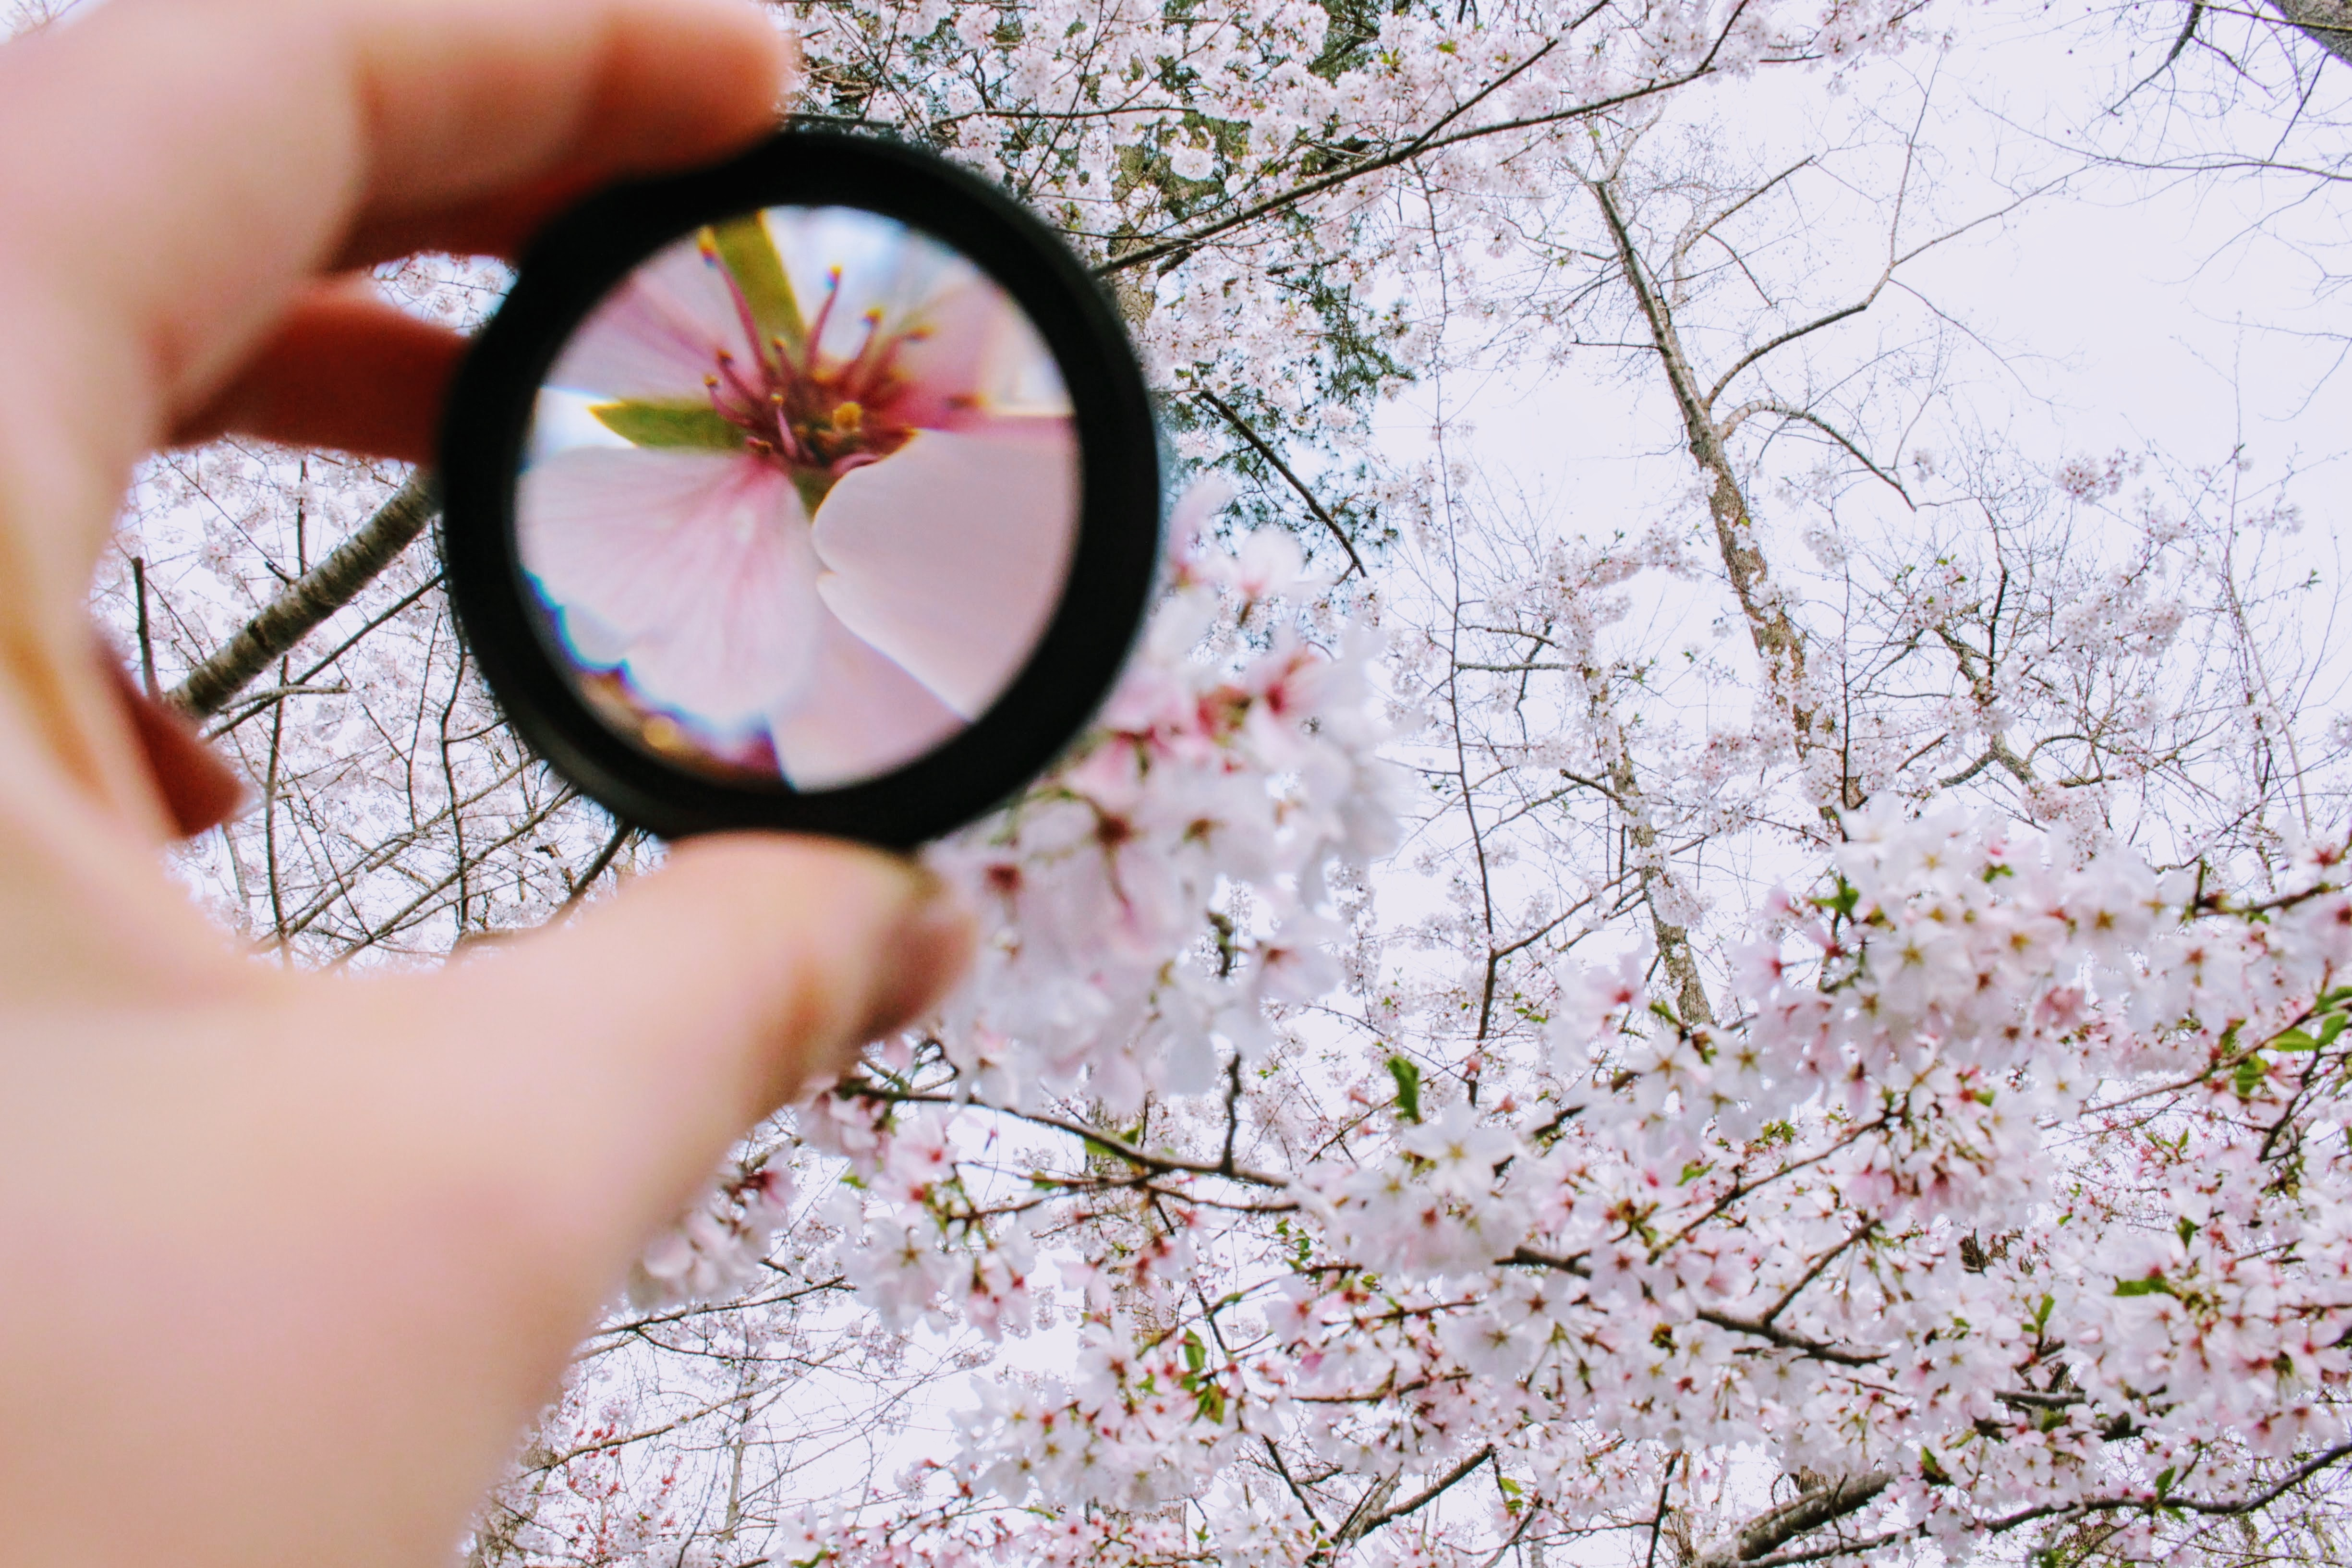 Want to re-focus your life